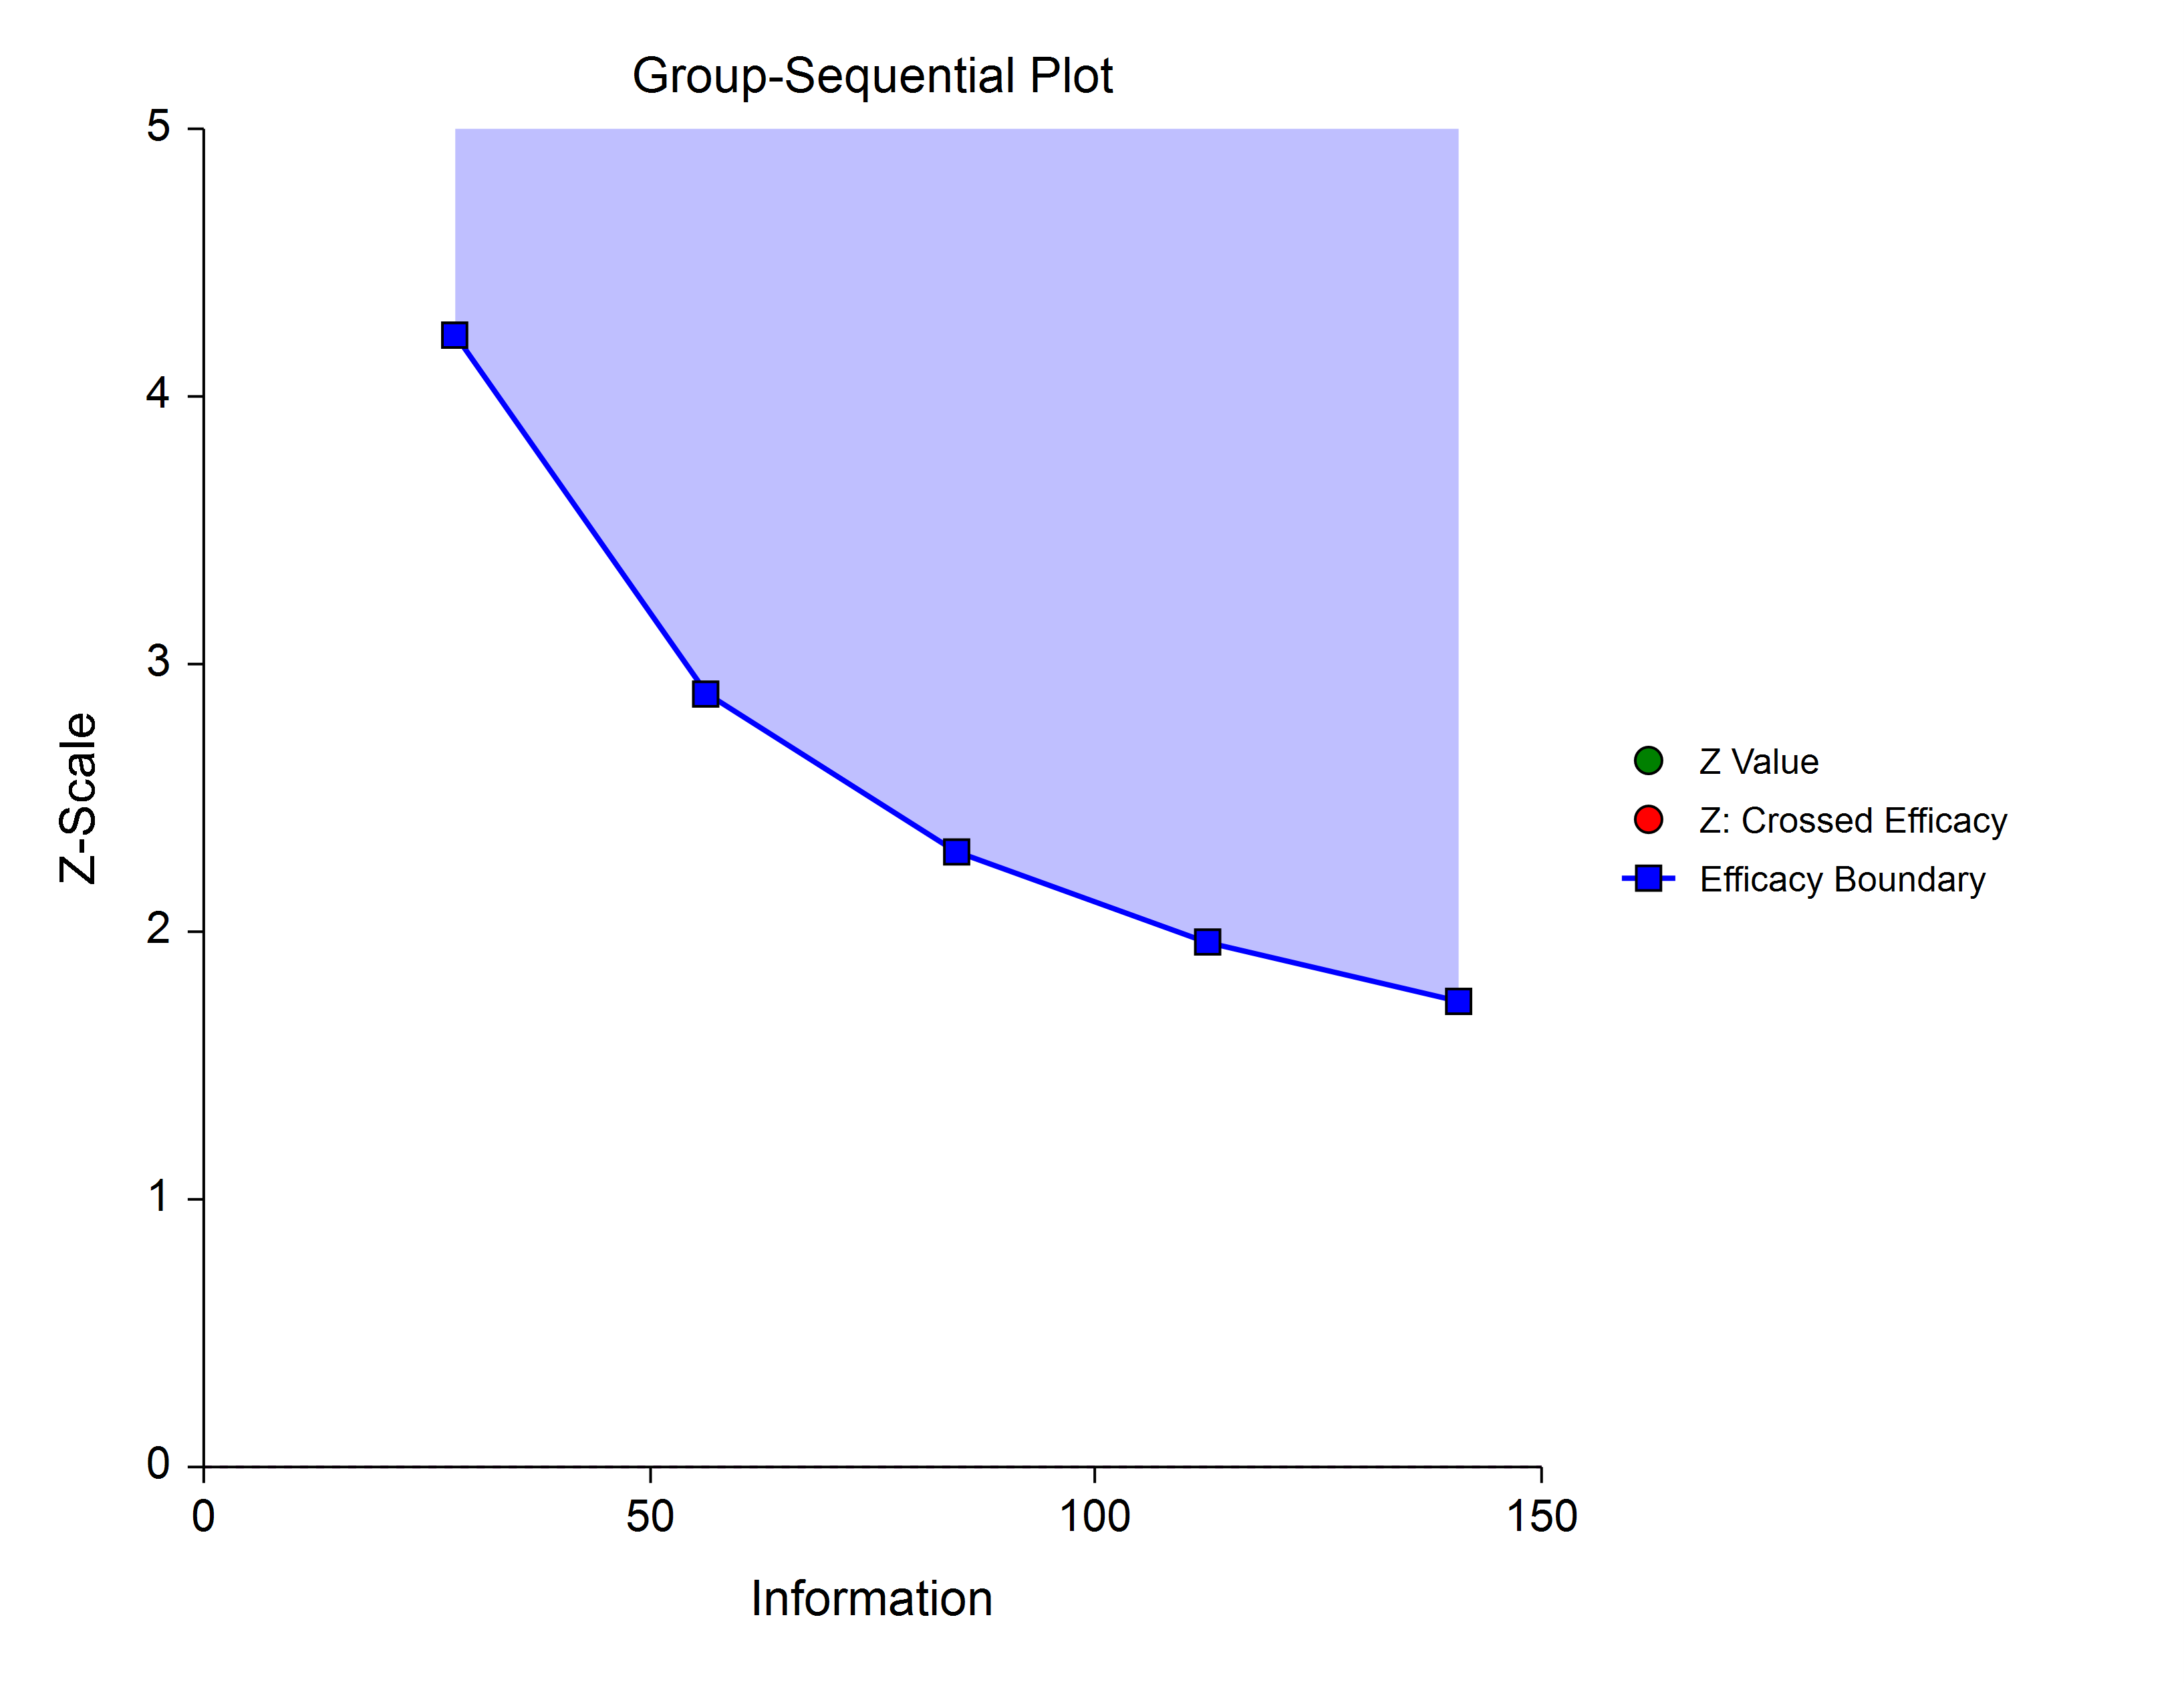 Group-Sequential Efficacy Only One-Sided Boundaries